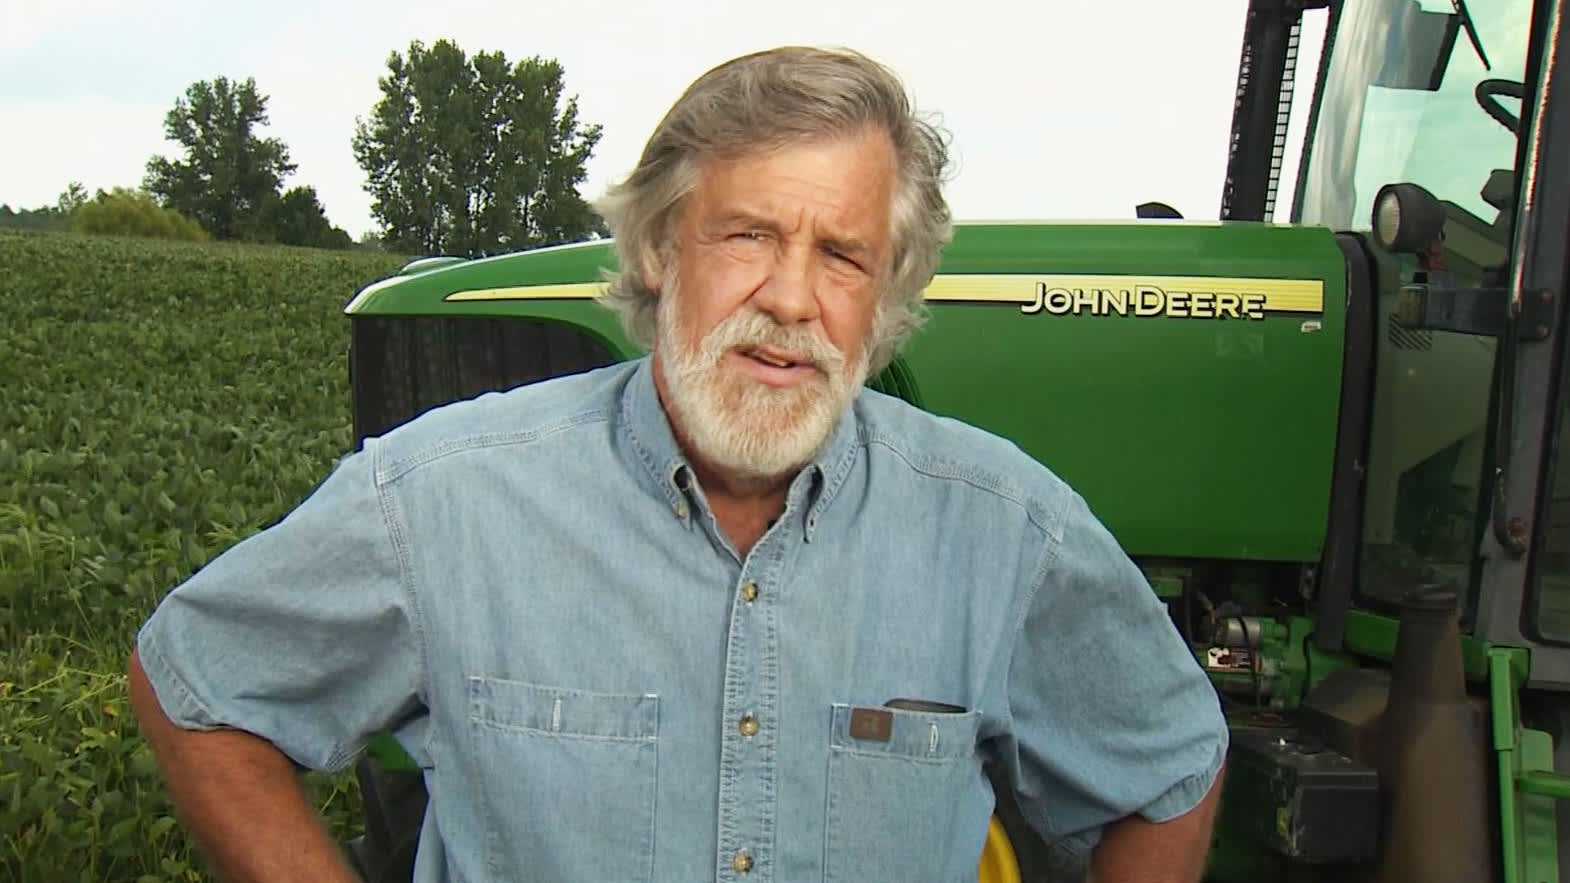 I won't be voting for the president again, says Ohio farmer who backed Trump in 2016